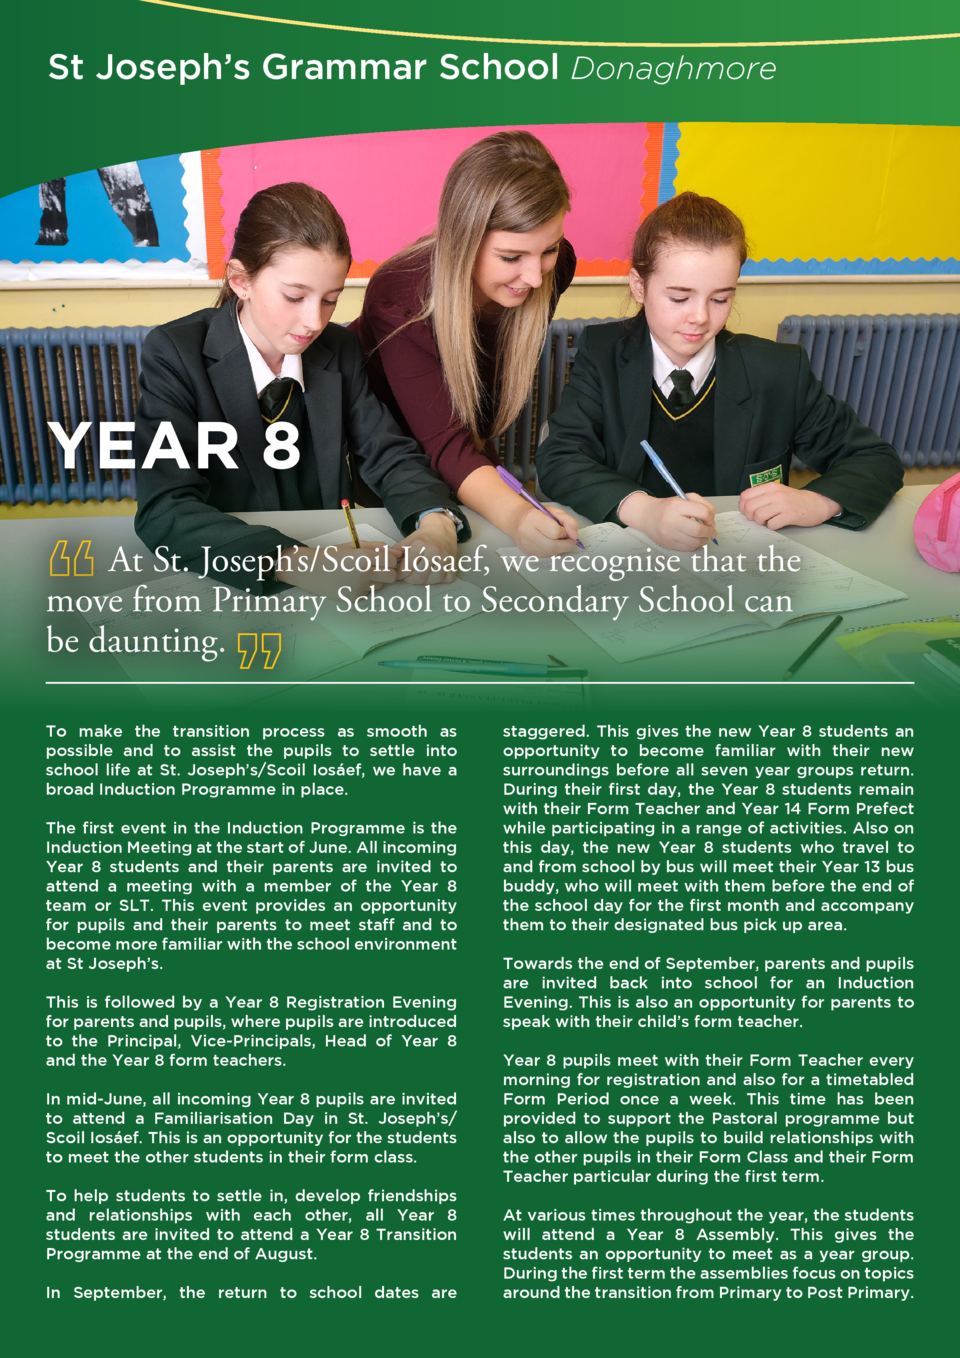 St Joseph   s Grammar School Donaghmore  YEAR 8 At St. Joseph   s Scoil I  saef, we recognise that the move from Primary S...